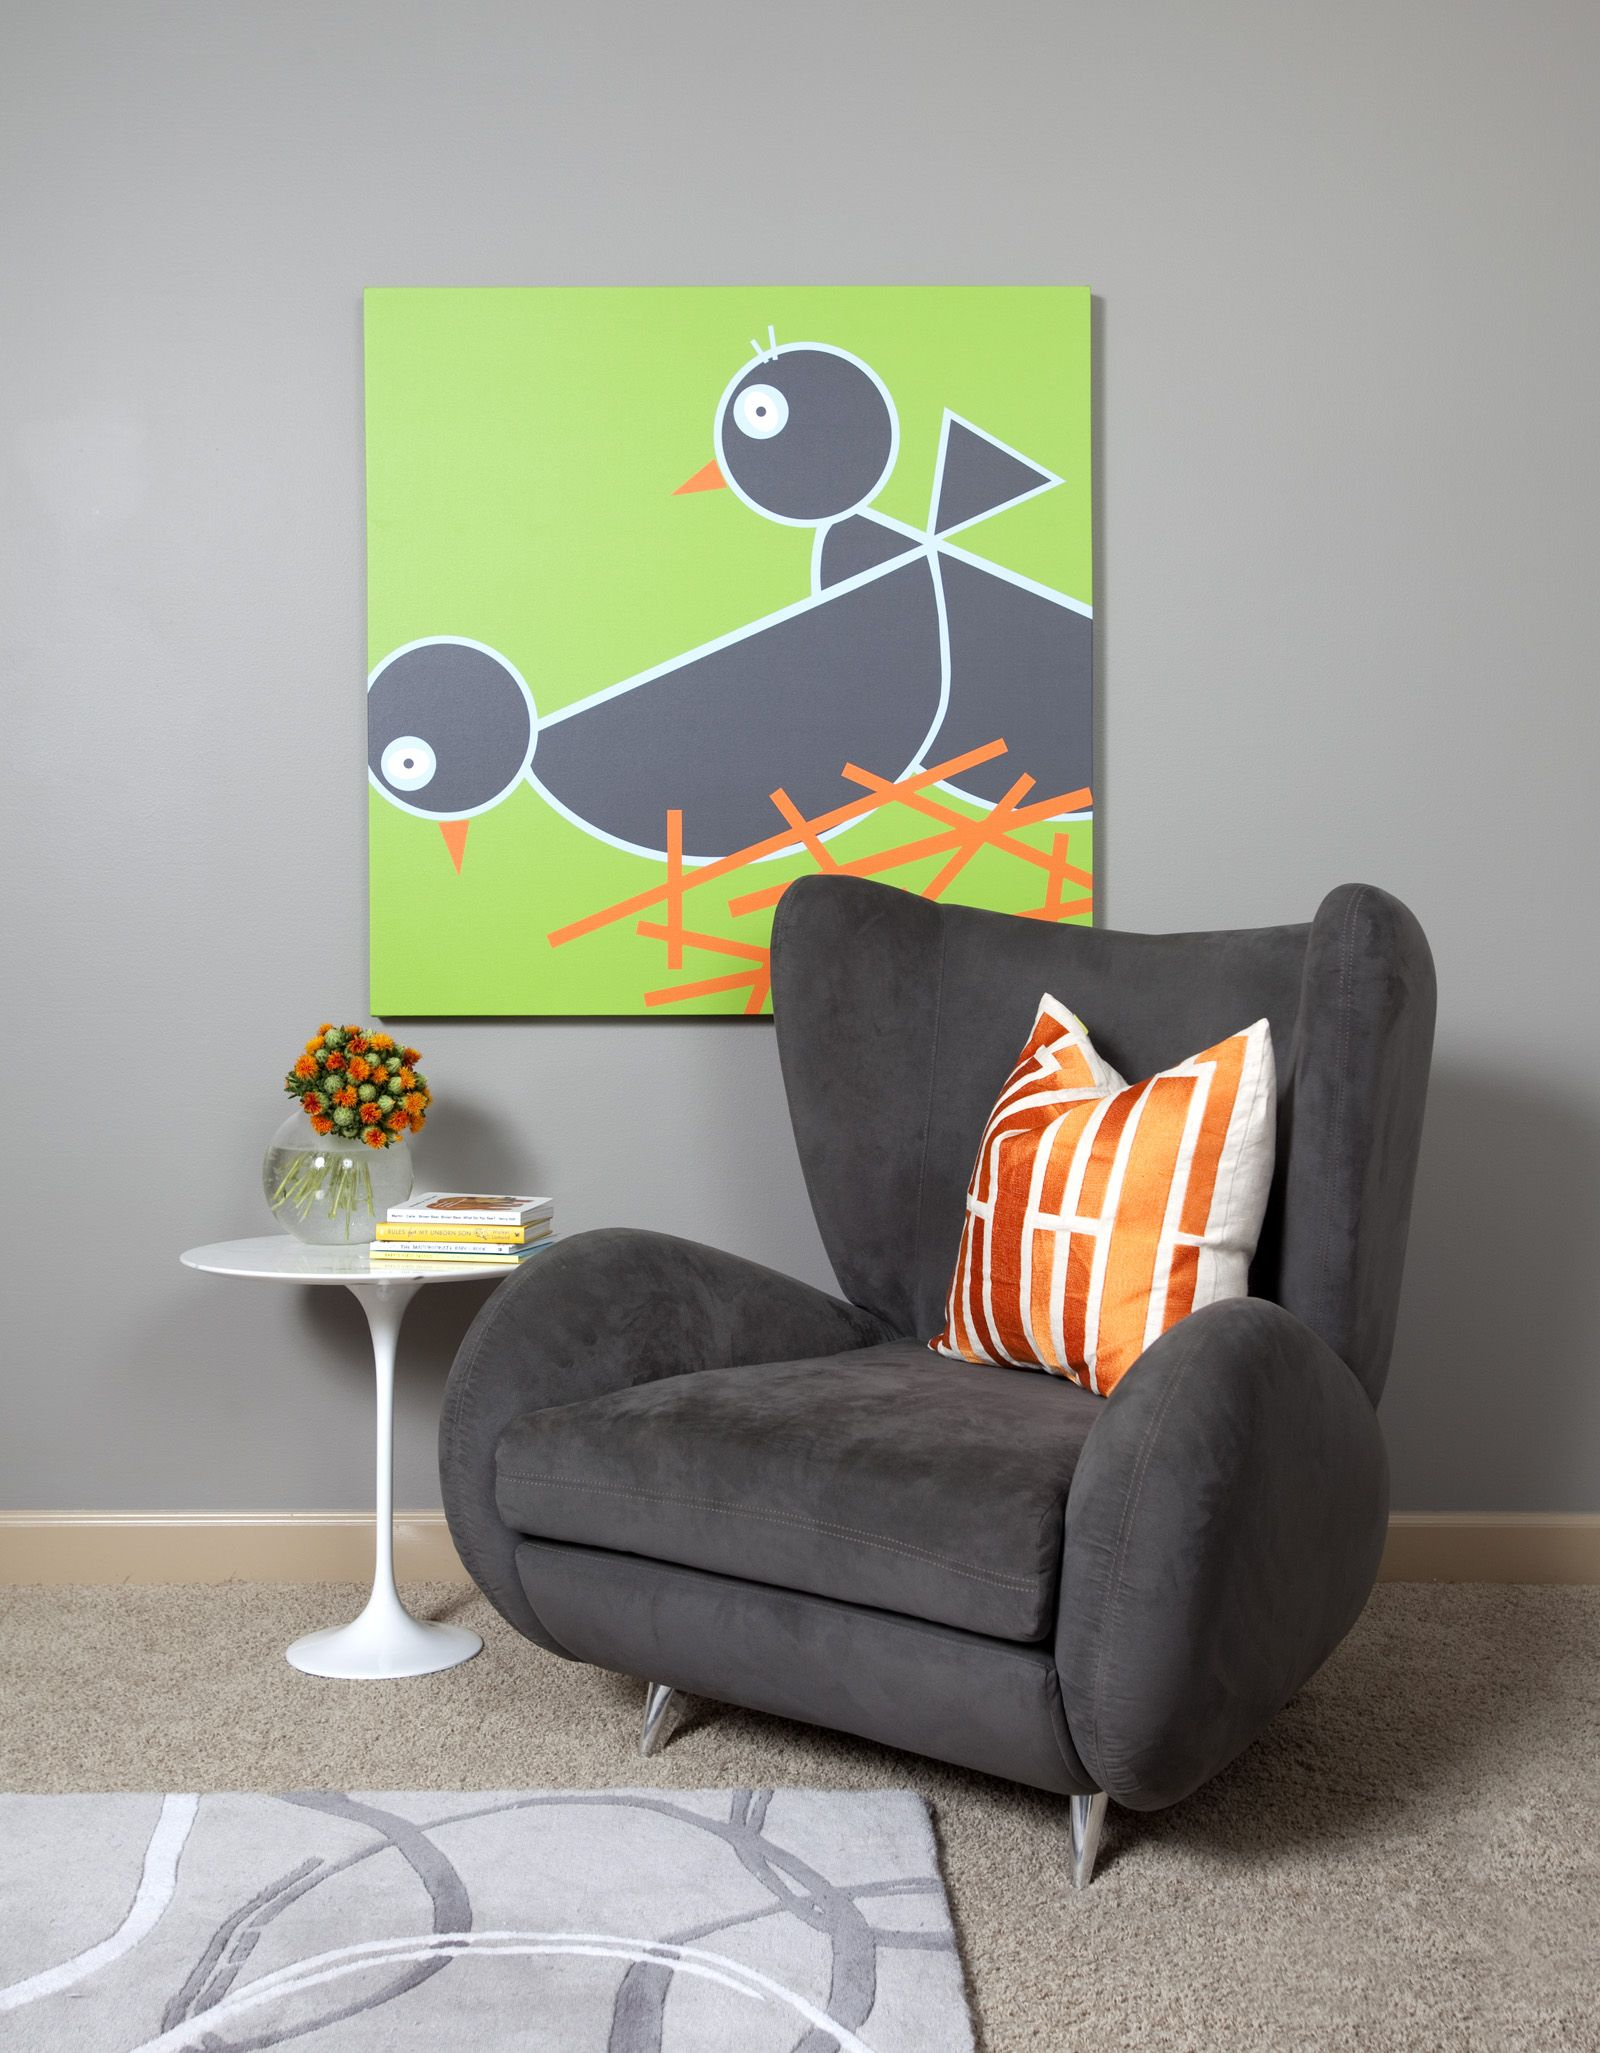 Design by Eric Ford, Photographed by Nancy Nolan for @At Home in Arkansas Magazine